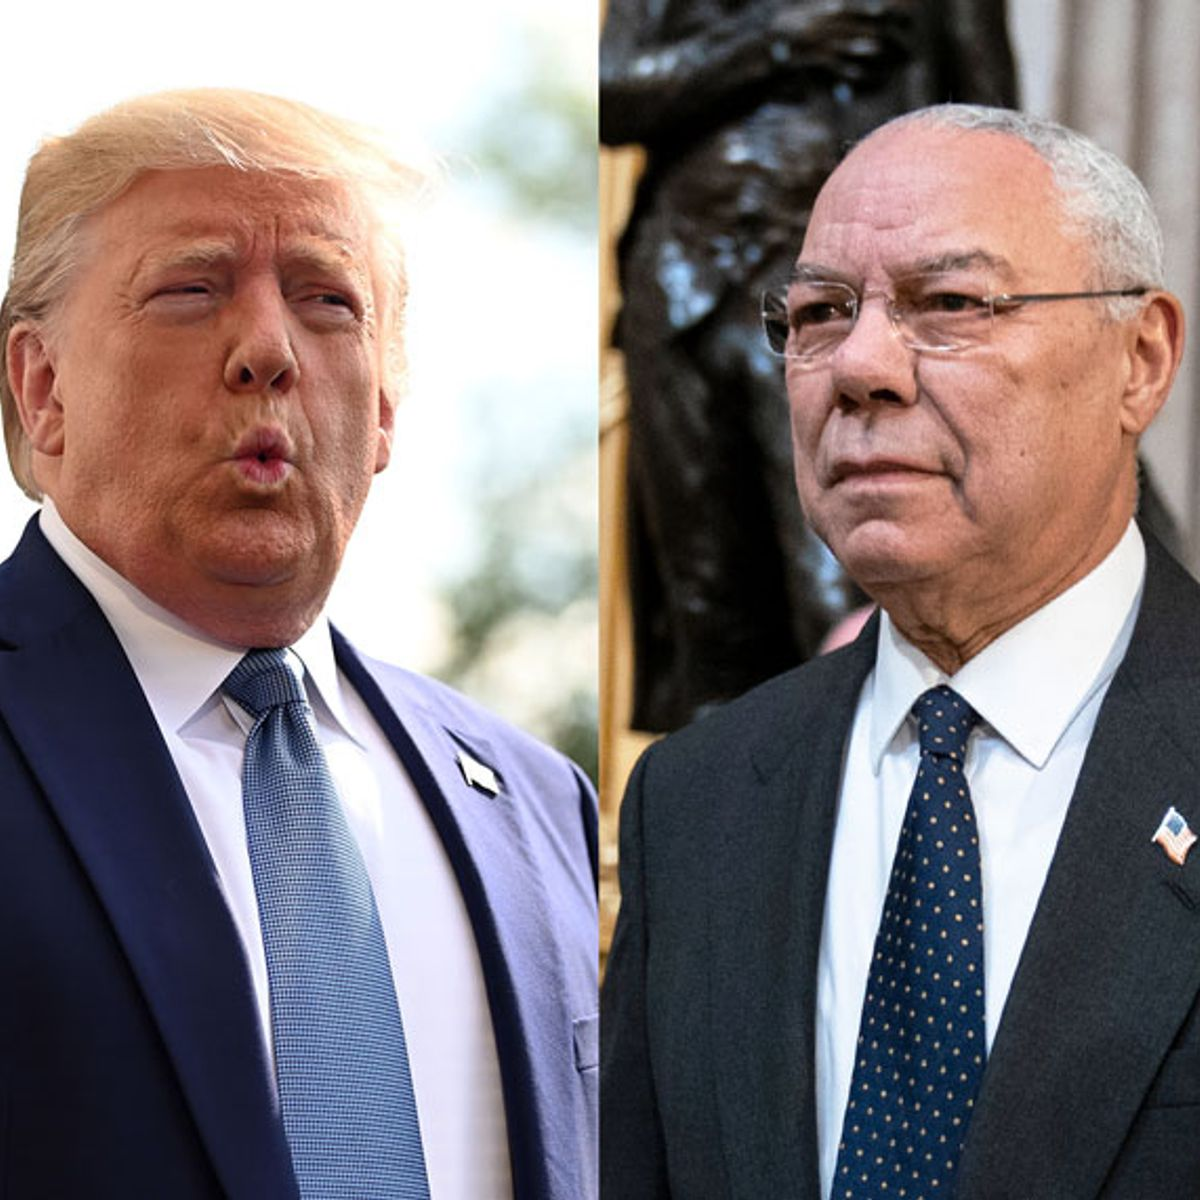 """Colin Powell calls out GOP in Trump era: """"The Republican Party has got to get a grip on itself"""""""